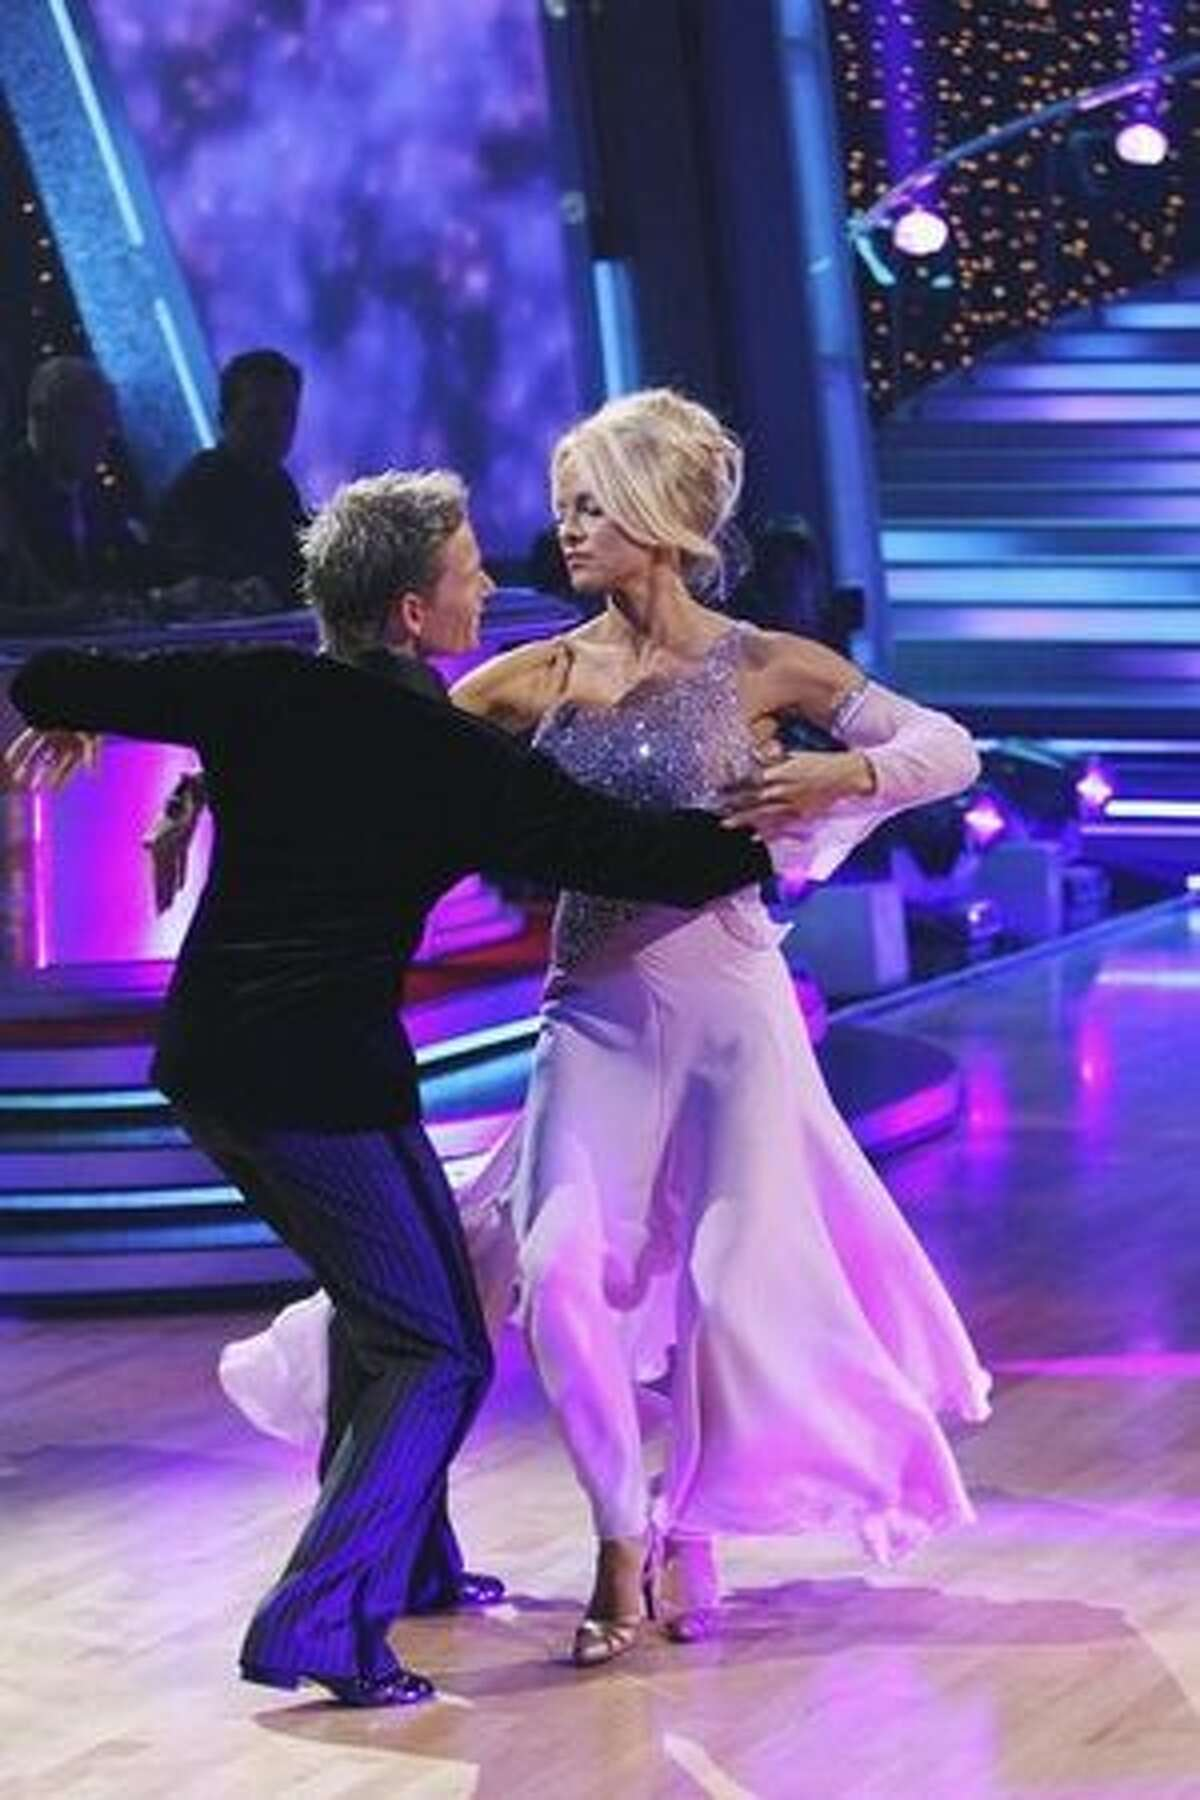 Next: Pamela Anderson and Damian Whitewood, performing a waltz.